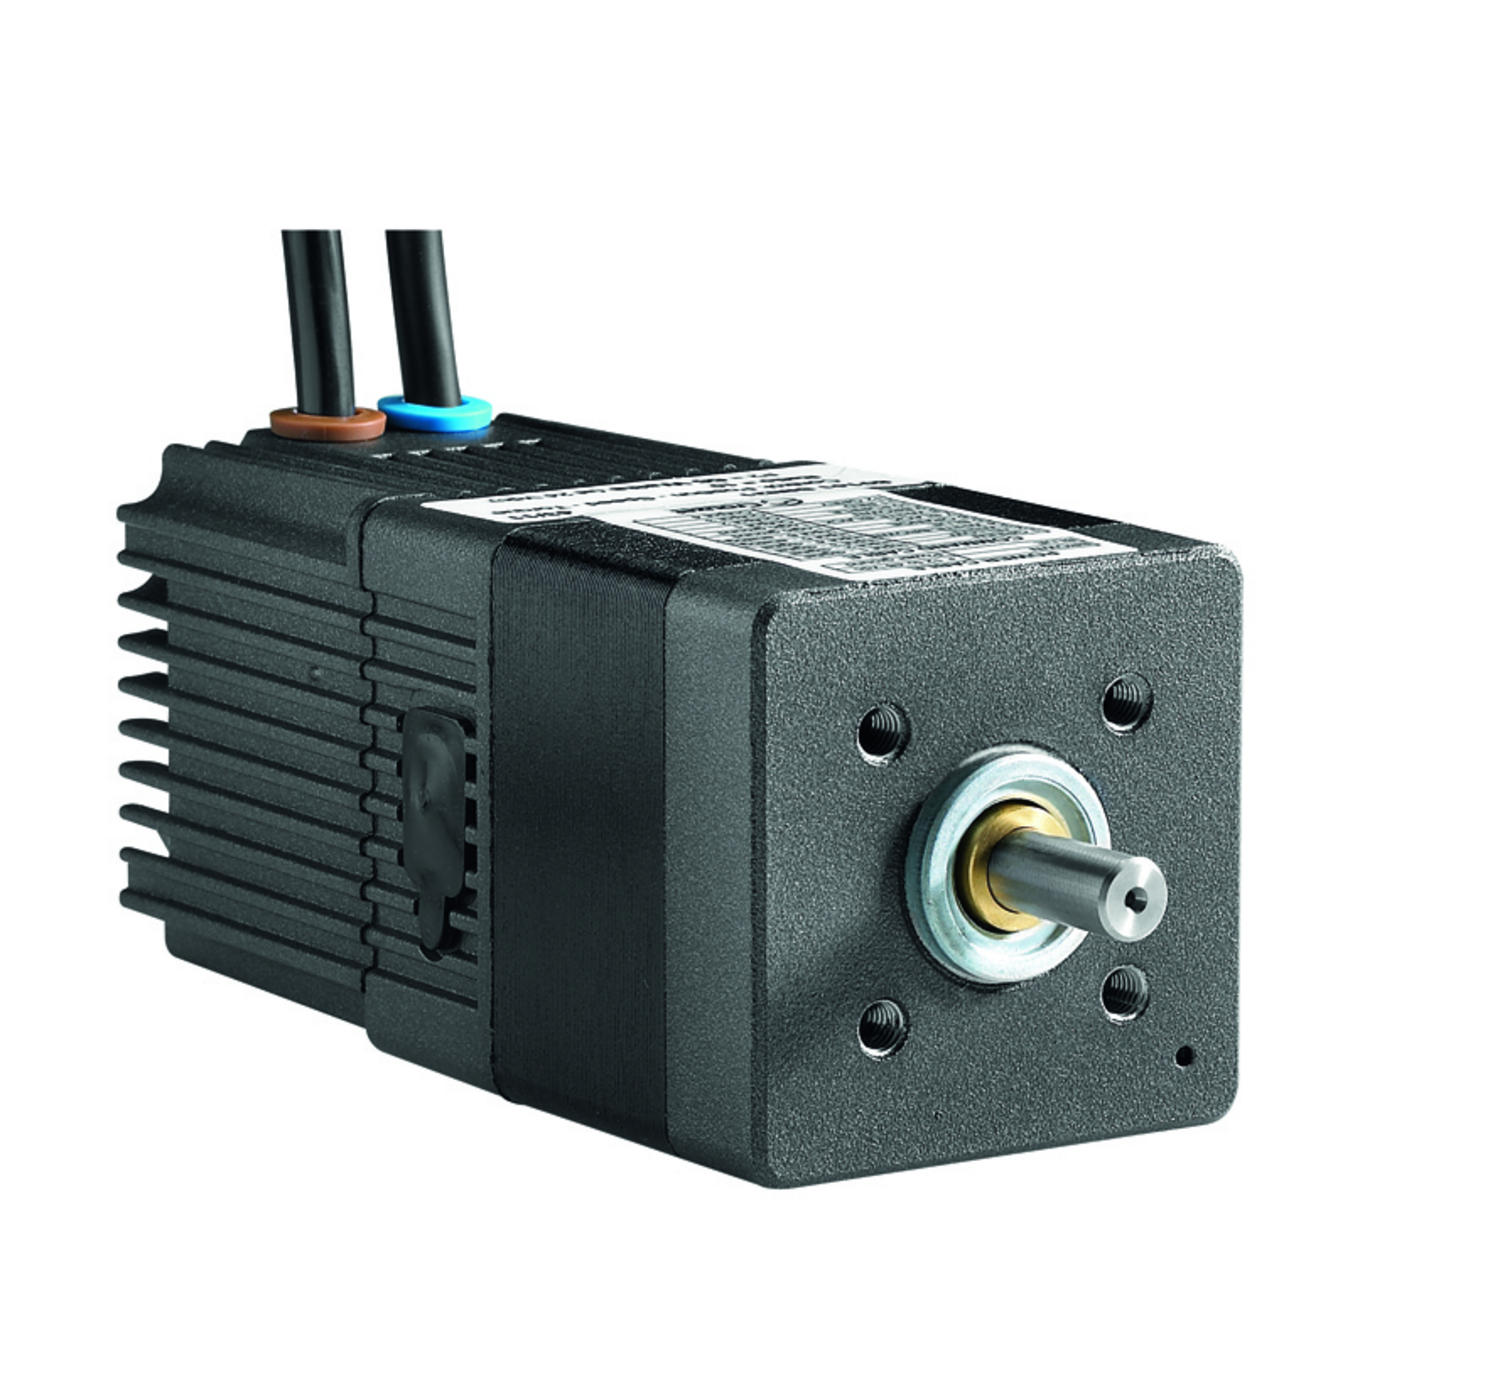 BLDC SQ57 motor with integrated SMi21 drive